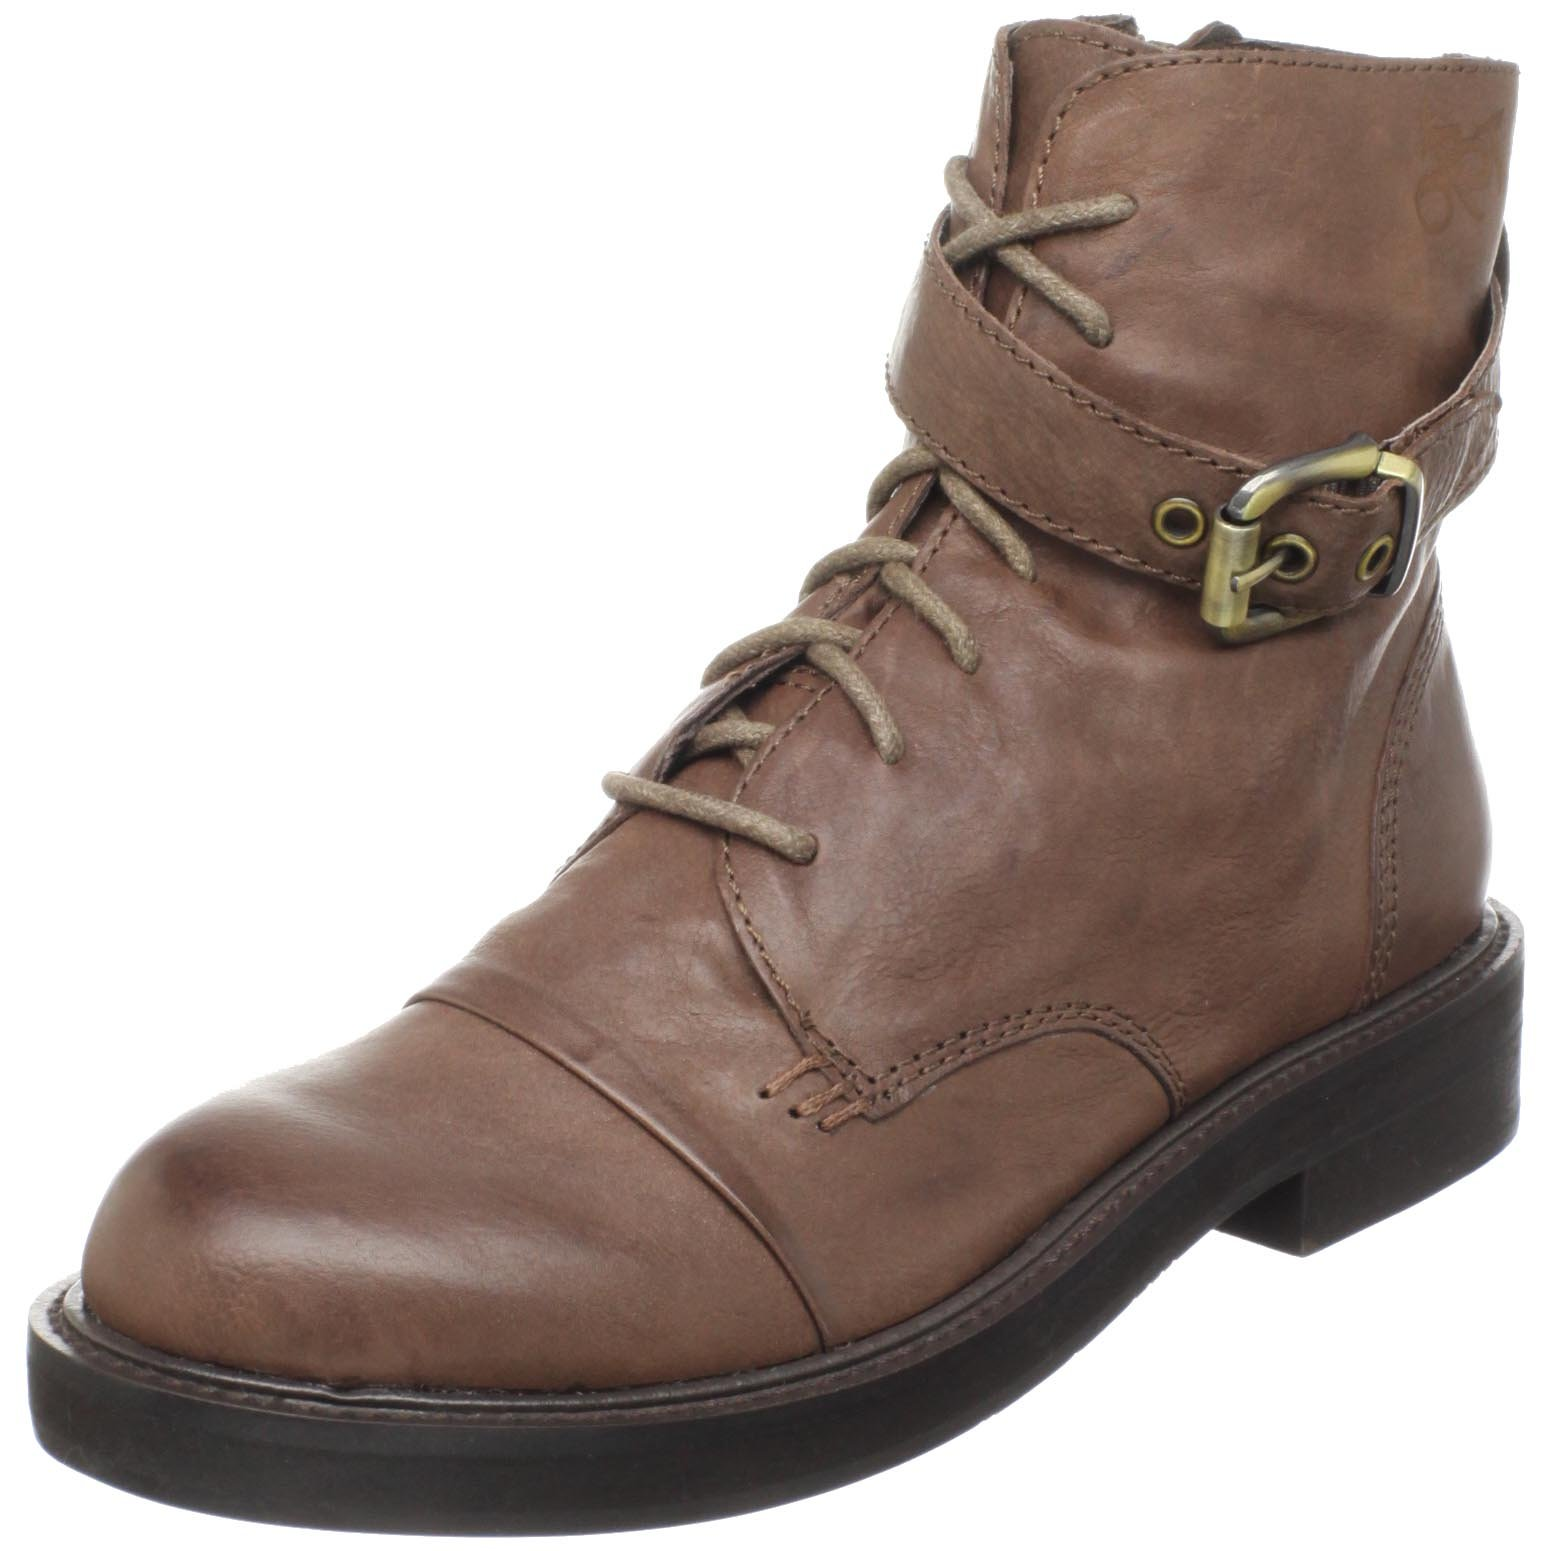 OTBT Women's Ann Arbor Ankle Boot